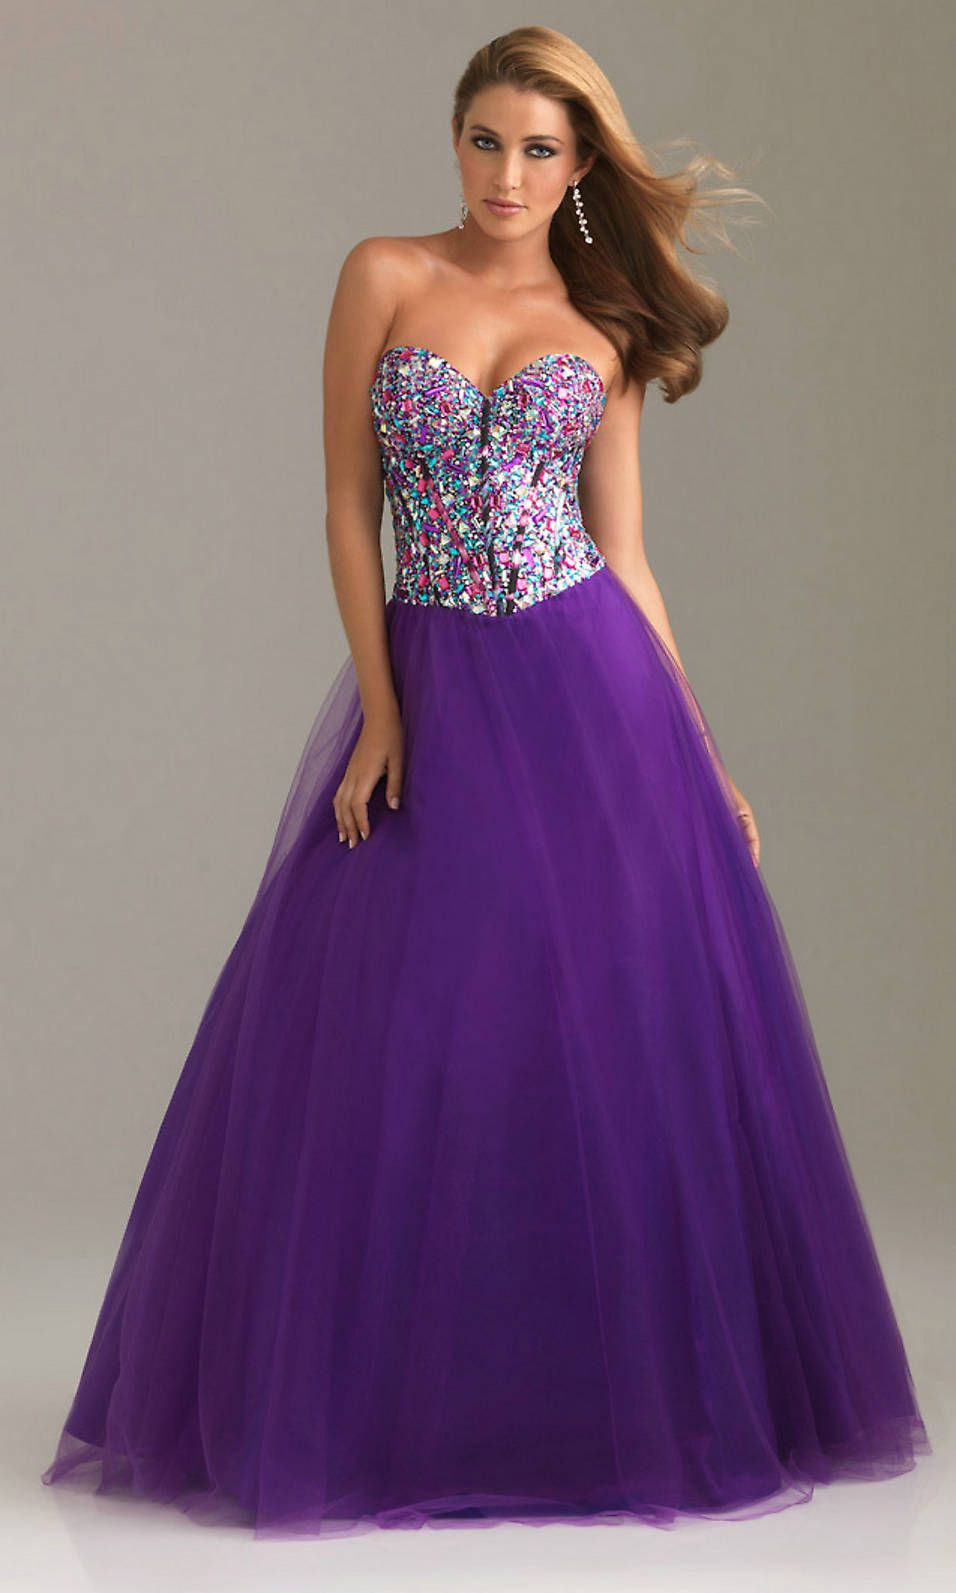 17 Best images about Purple prom dresses on Pinterest  Long prom ...